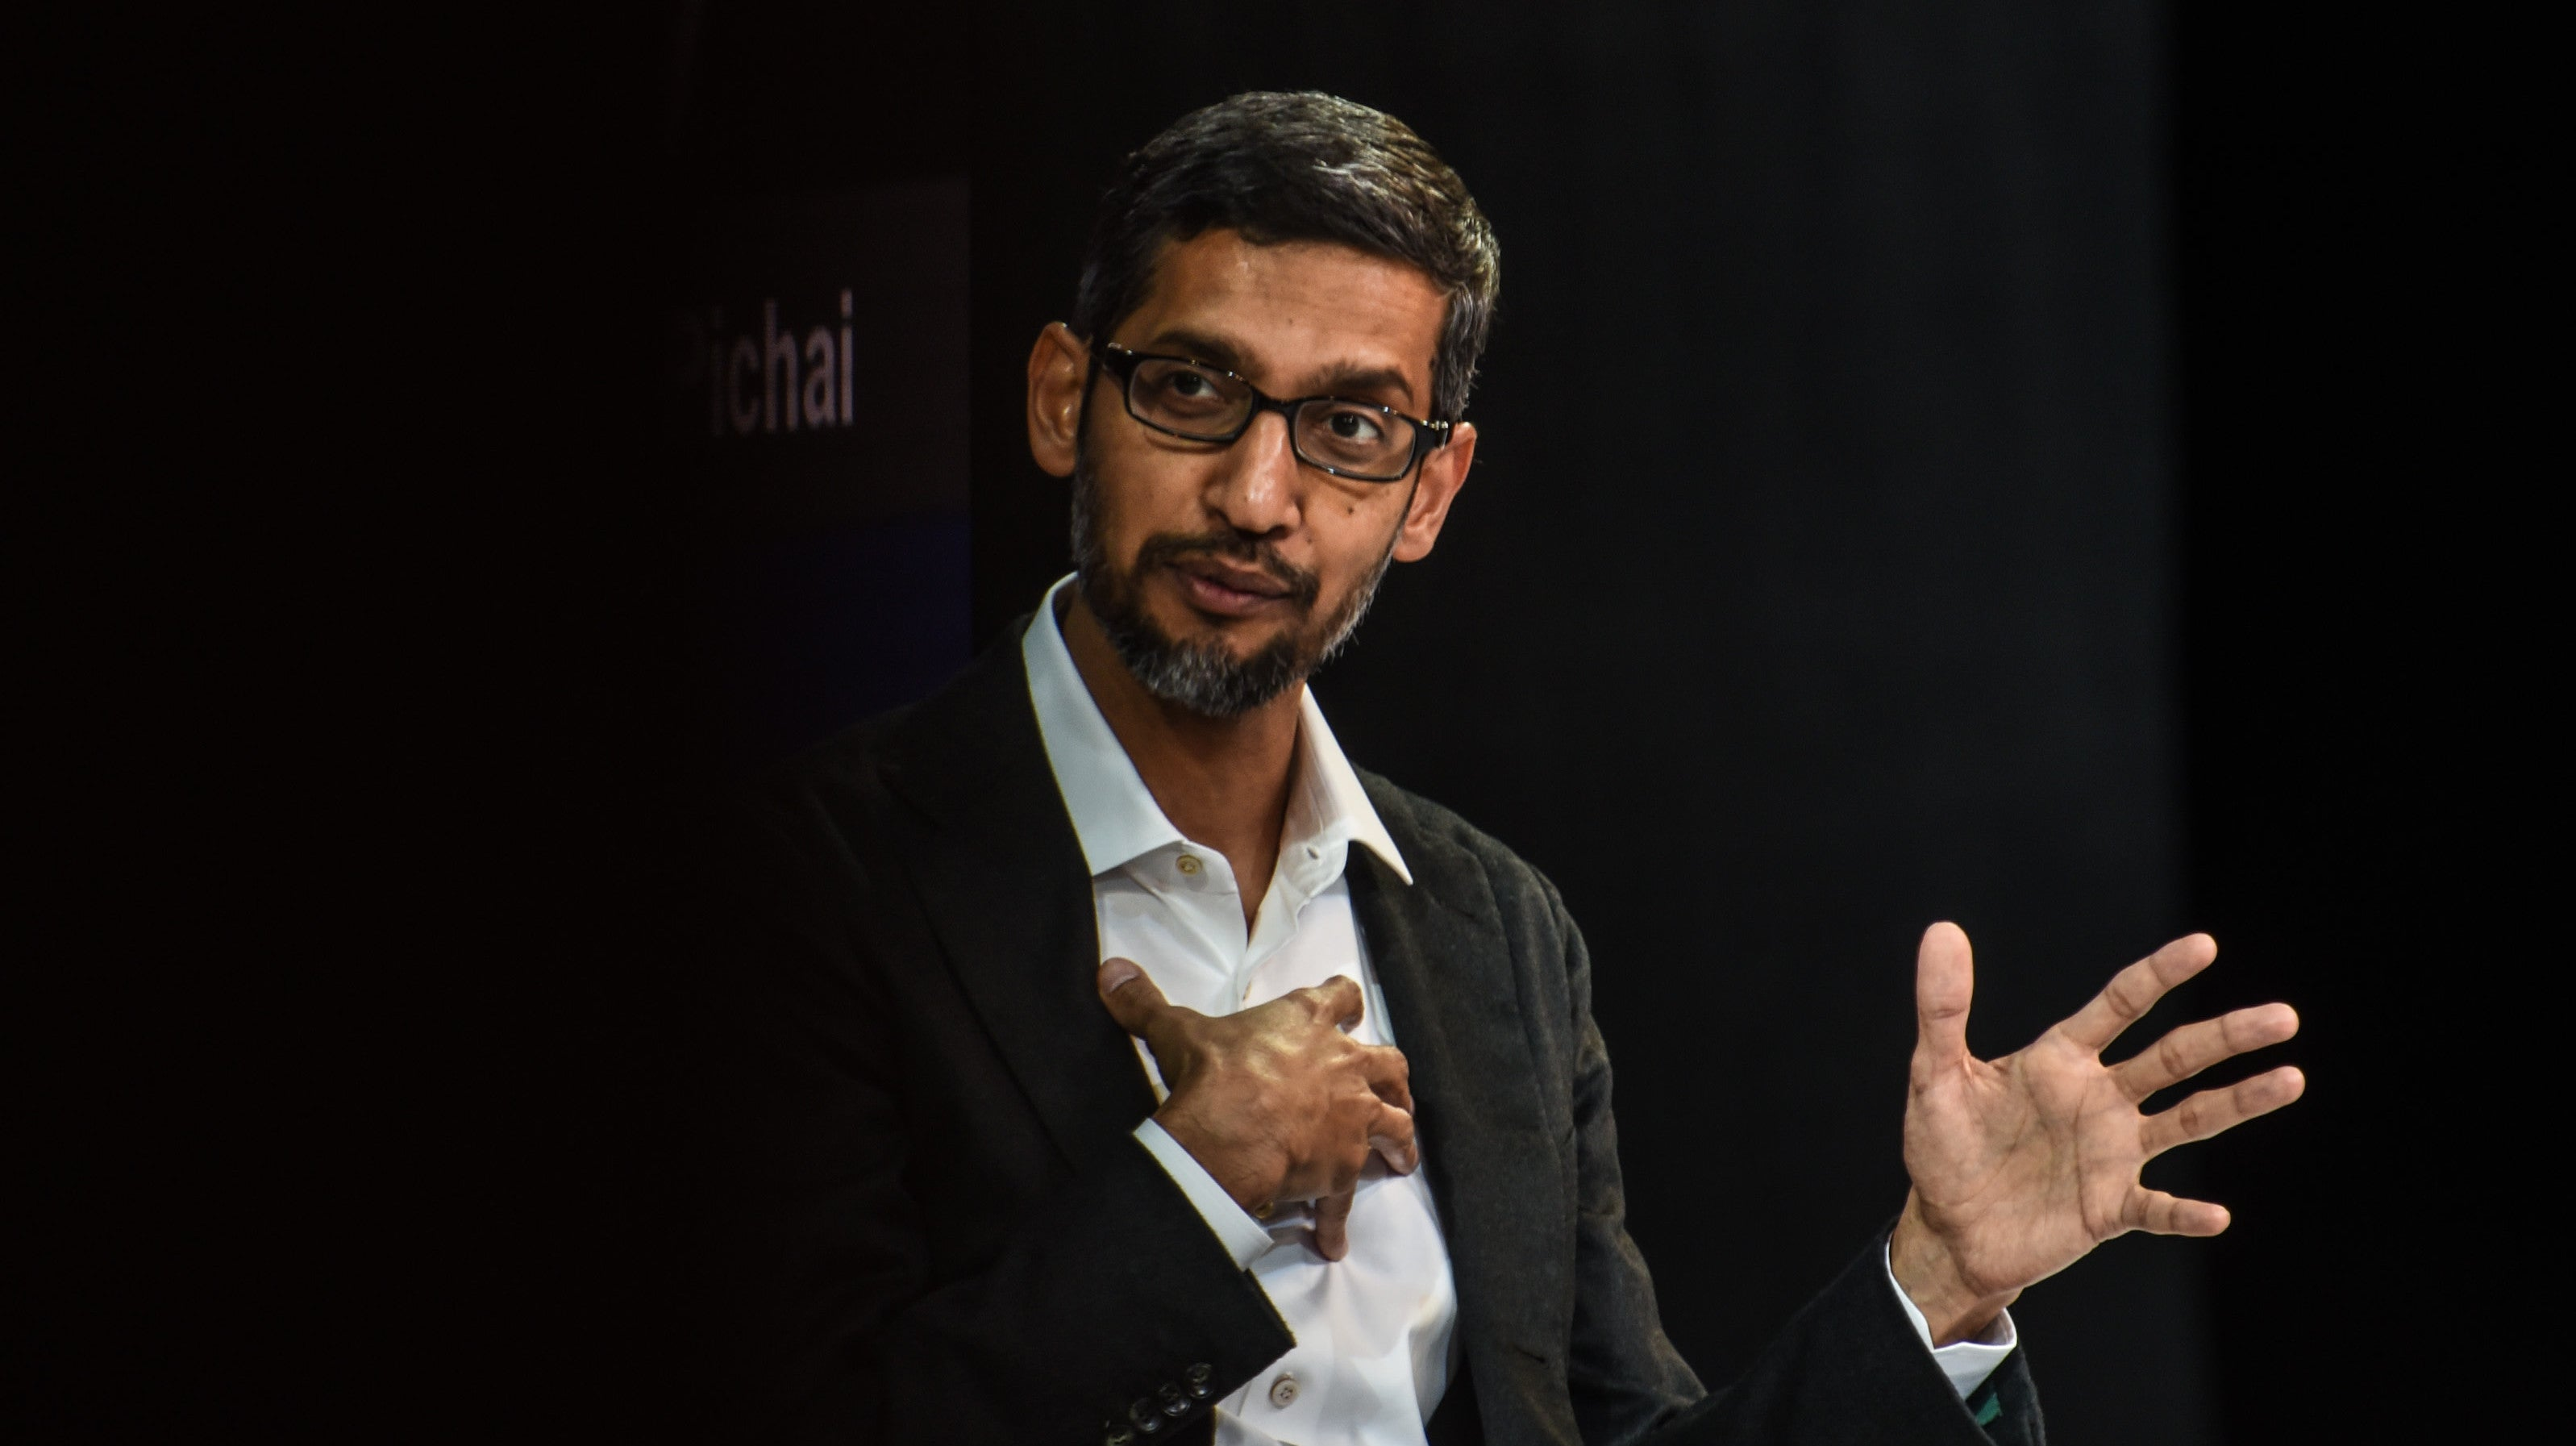 Google CEO Tries To Smooth Things Over After YouTube's Anti-LGBTQ Shitshow